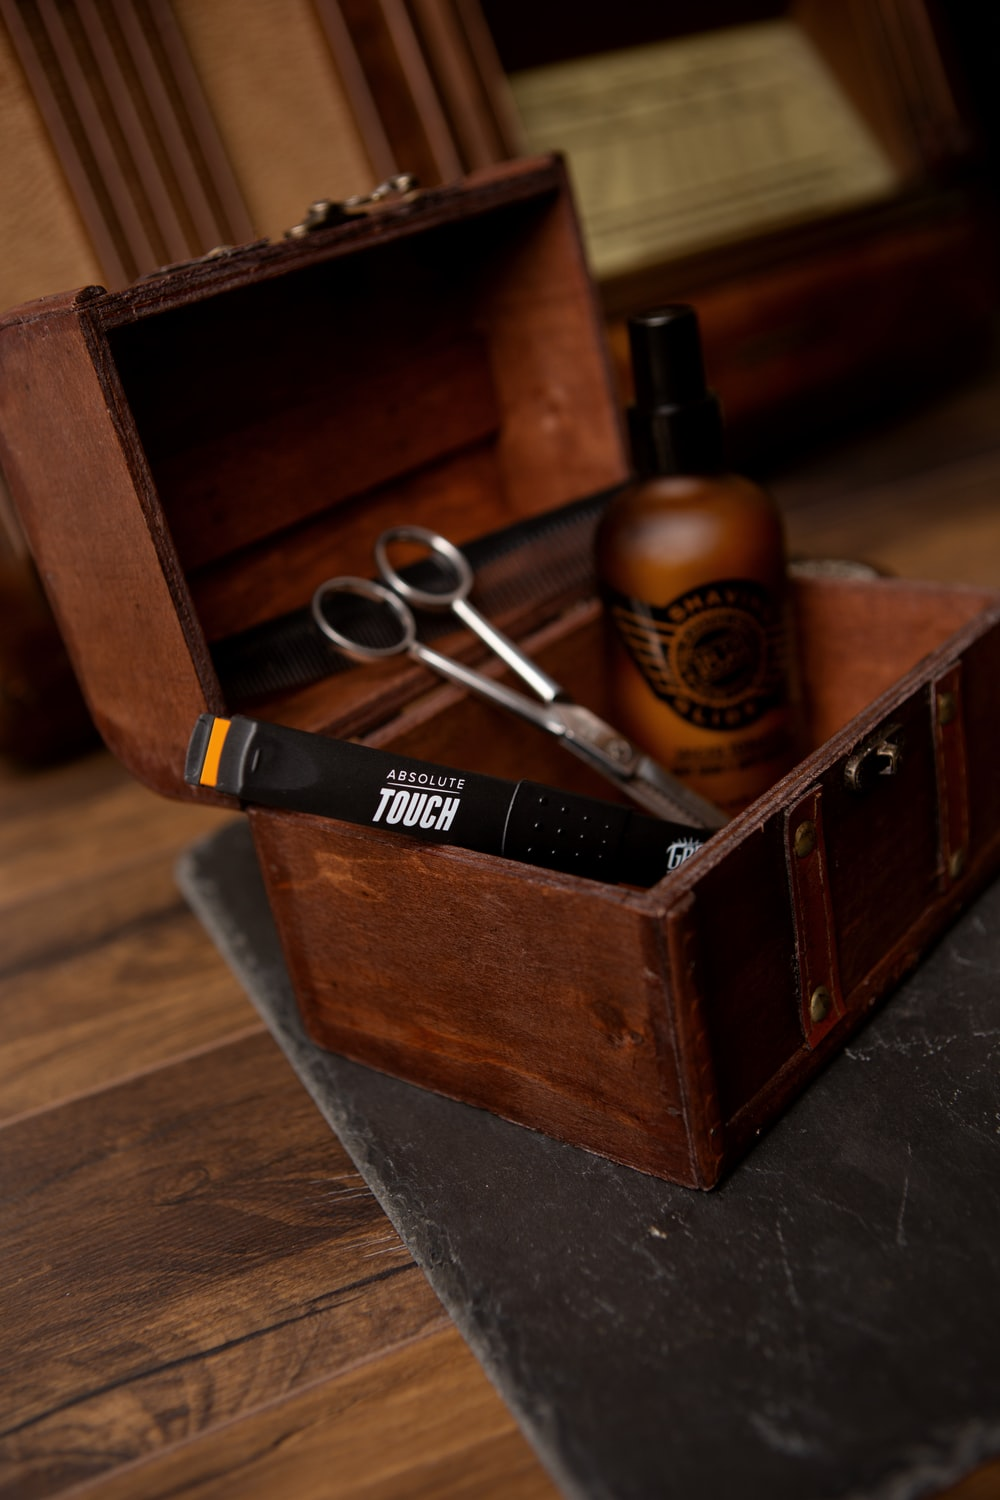 black and silver scissors on brown wooden box